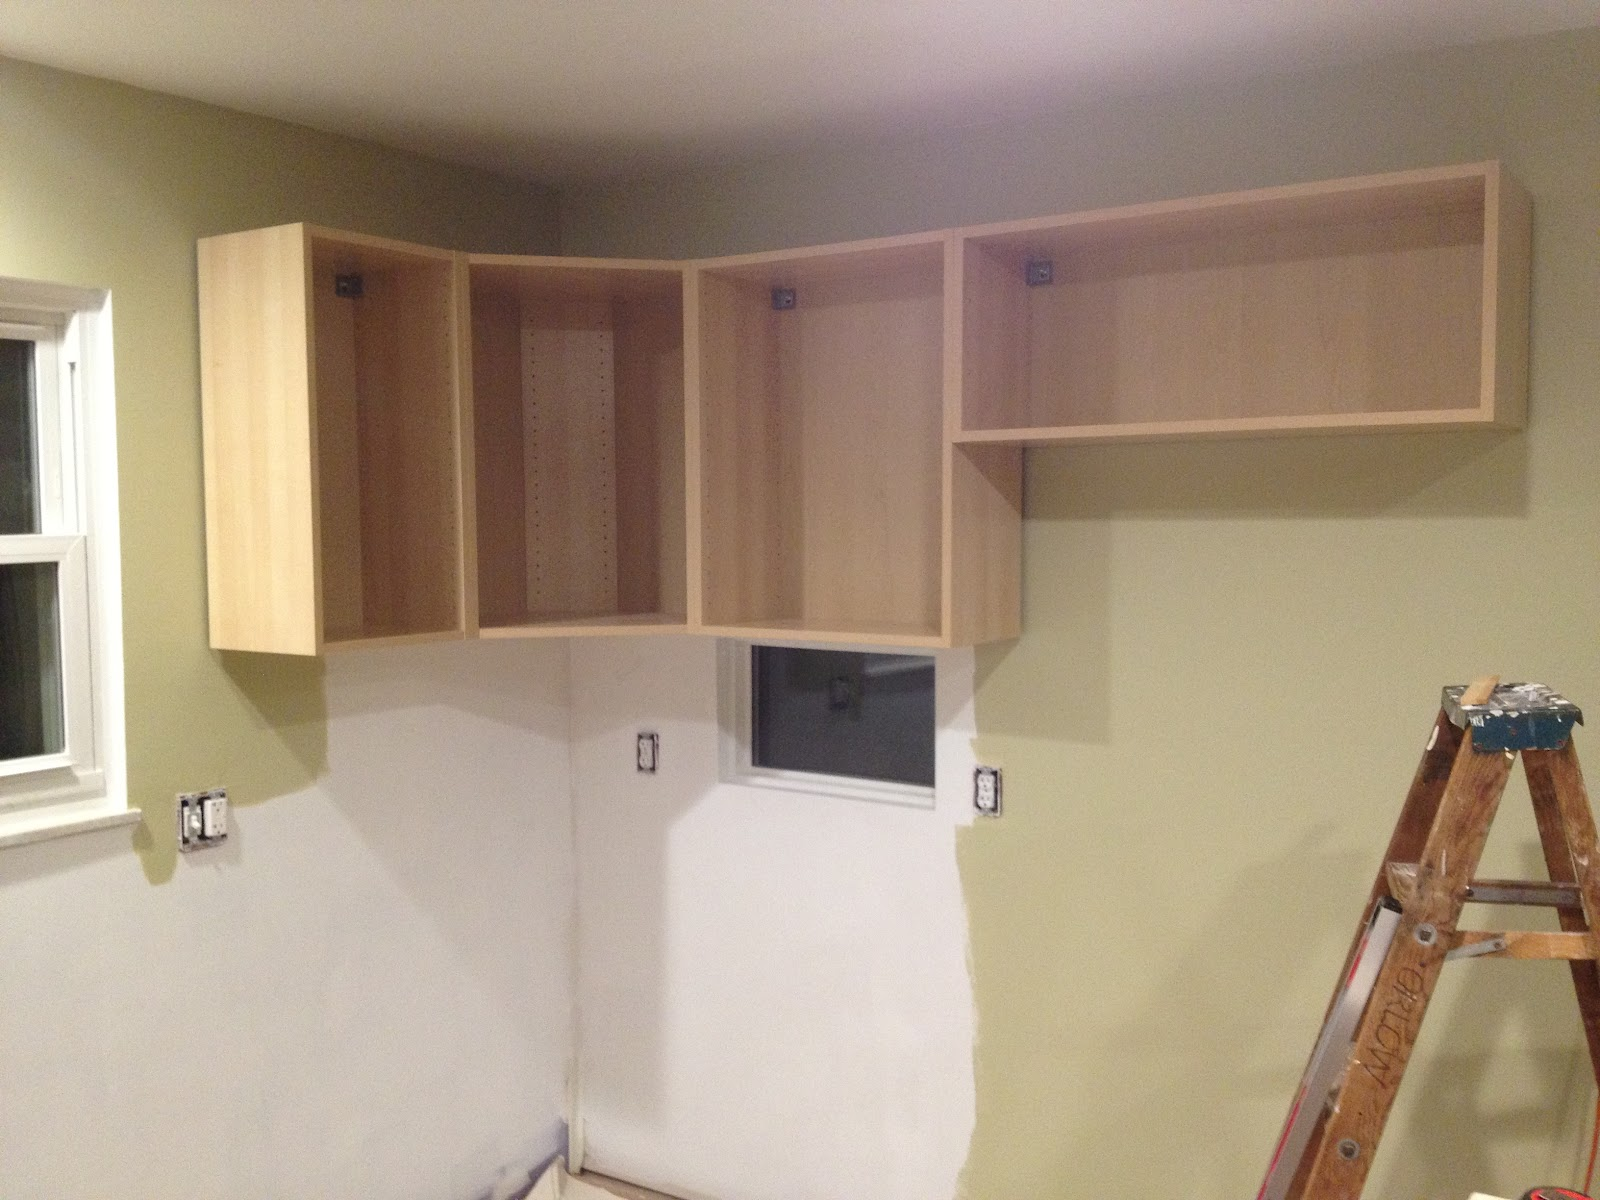 Ikea Kitchen Upper Cabinets How Much Is A Island Our September 2012